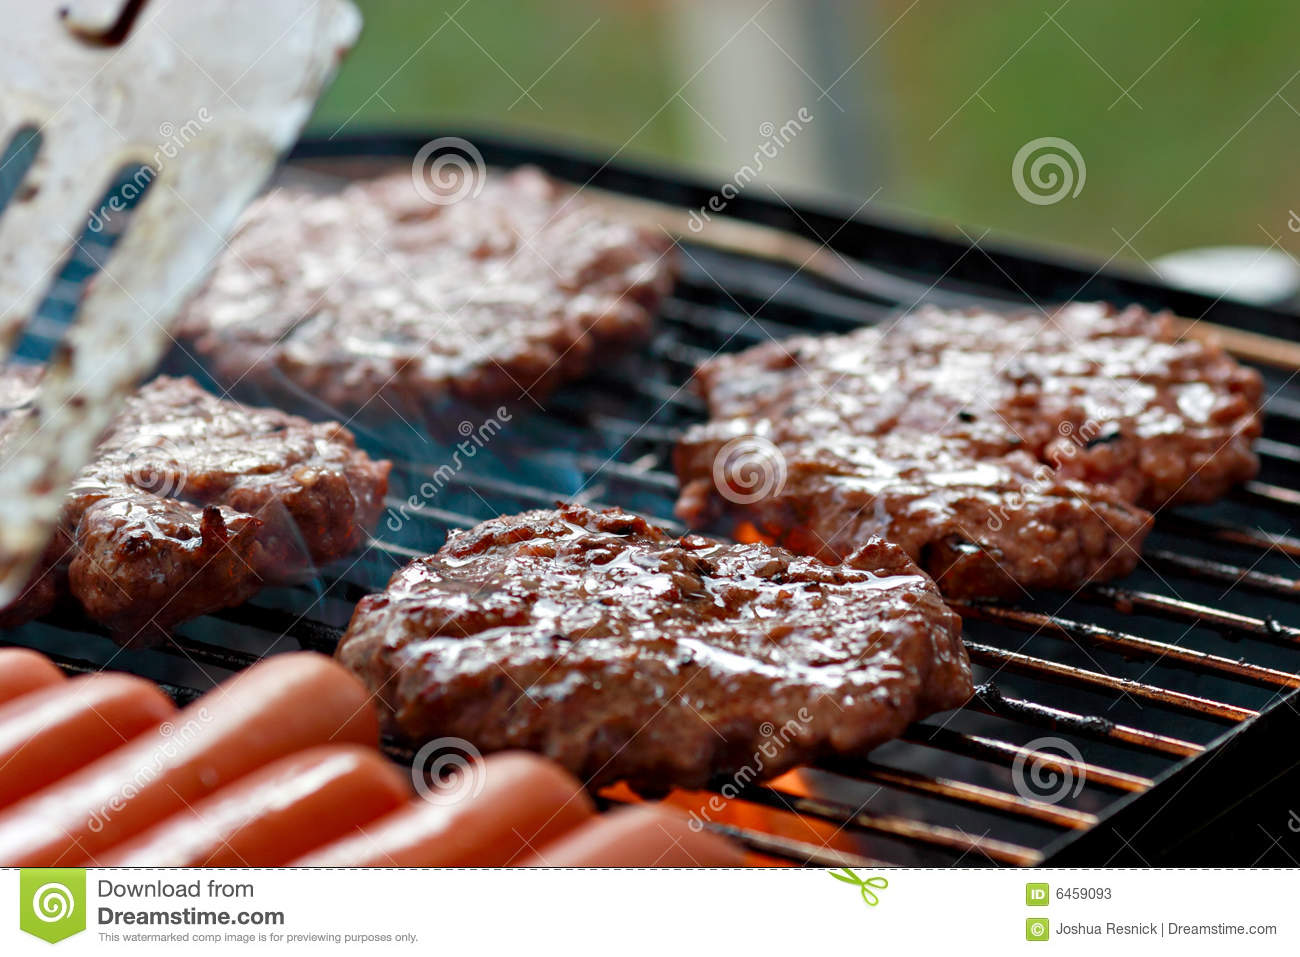 Grilling burgers and hot dogs